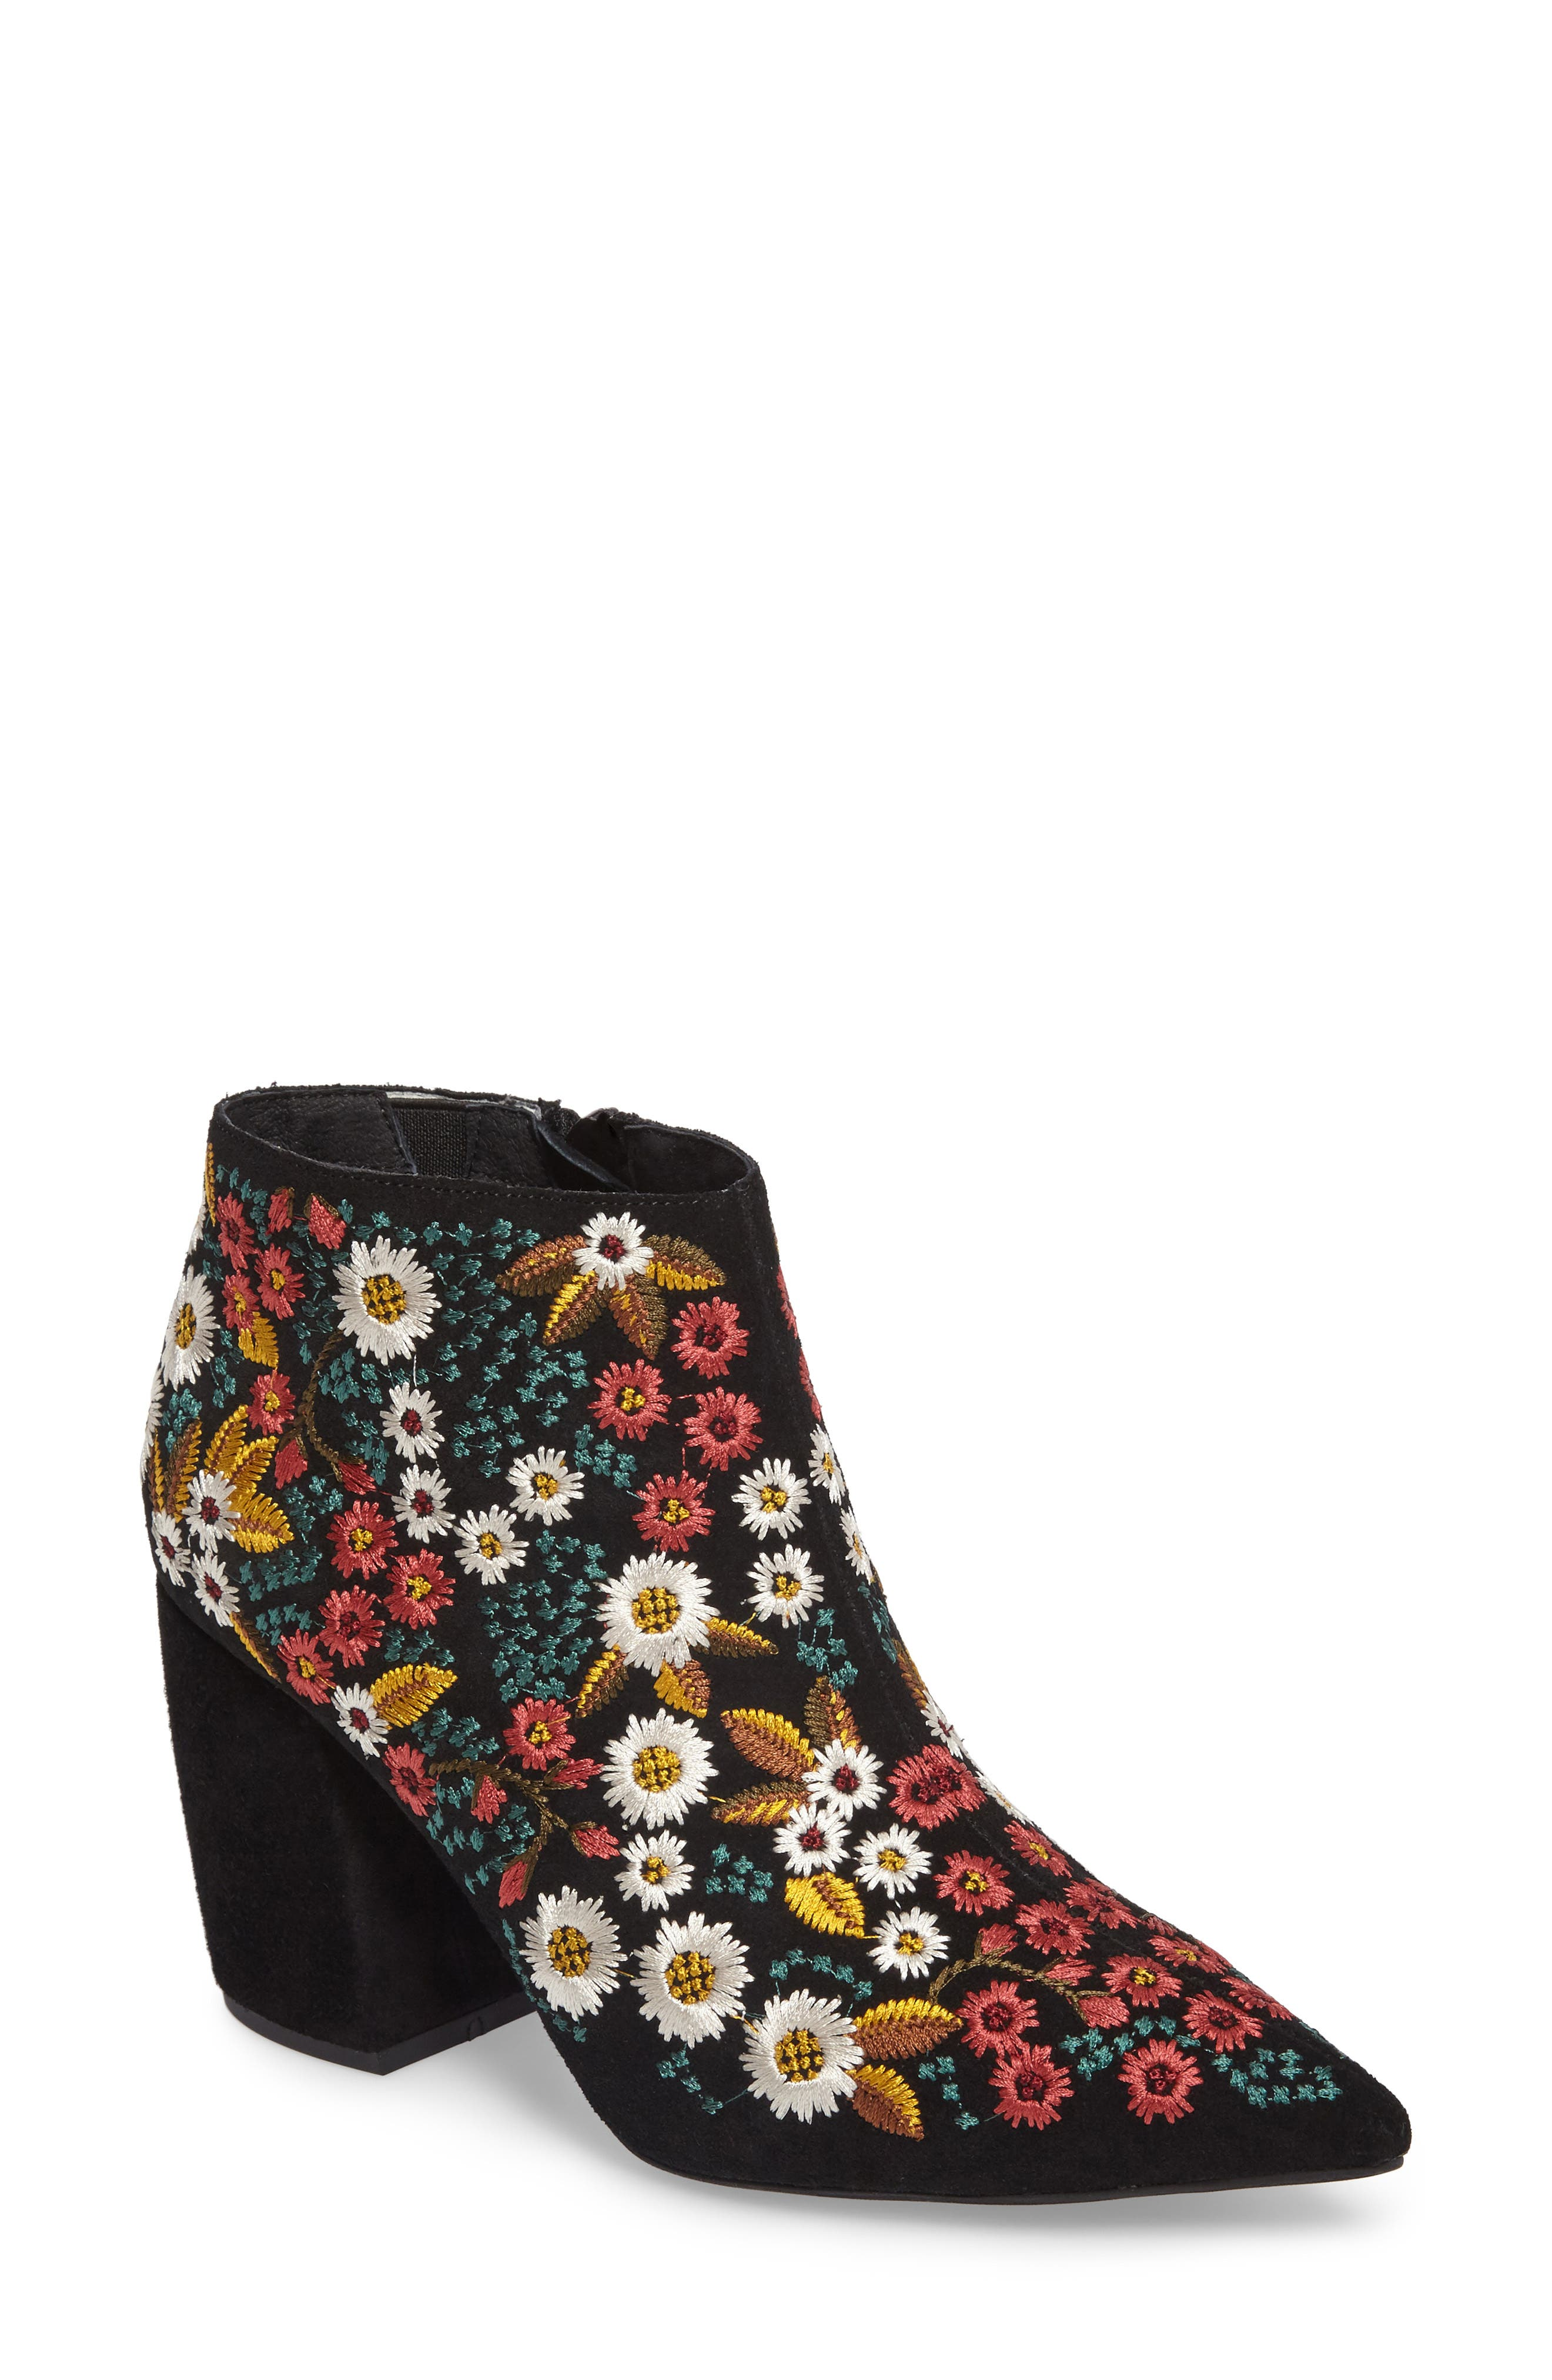 Alternate Image 1 Selected - Jeffrey Campbell Total Ankle Bootie (Women)